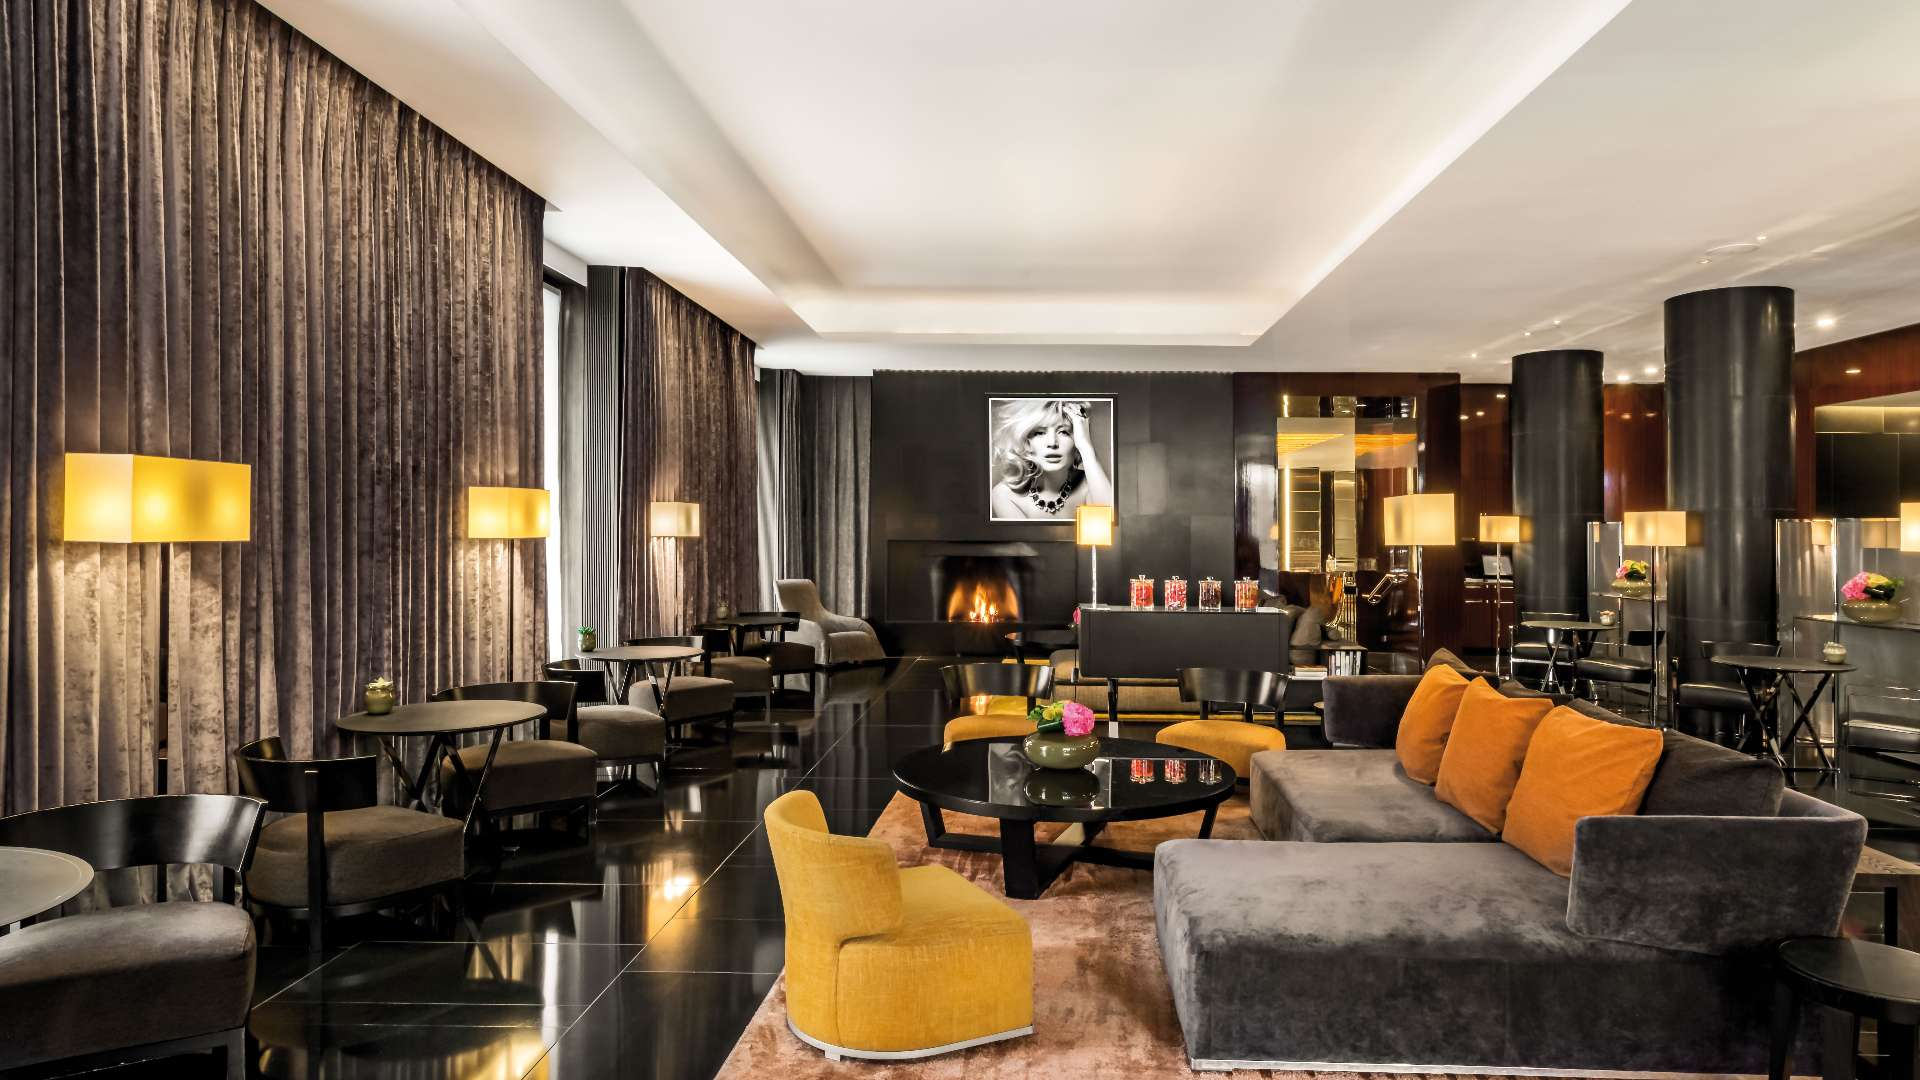 Bvlgari Hotel London Dining 2019